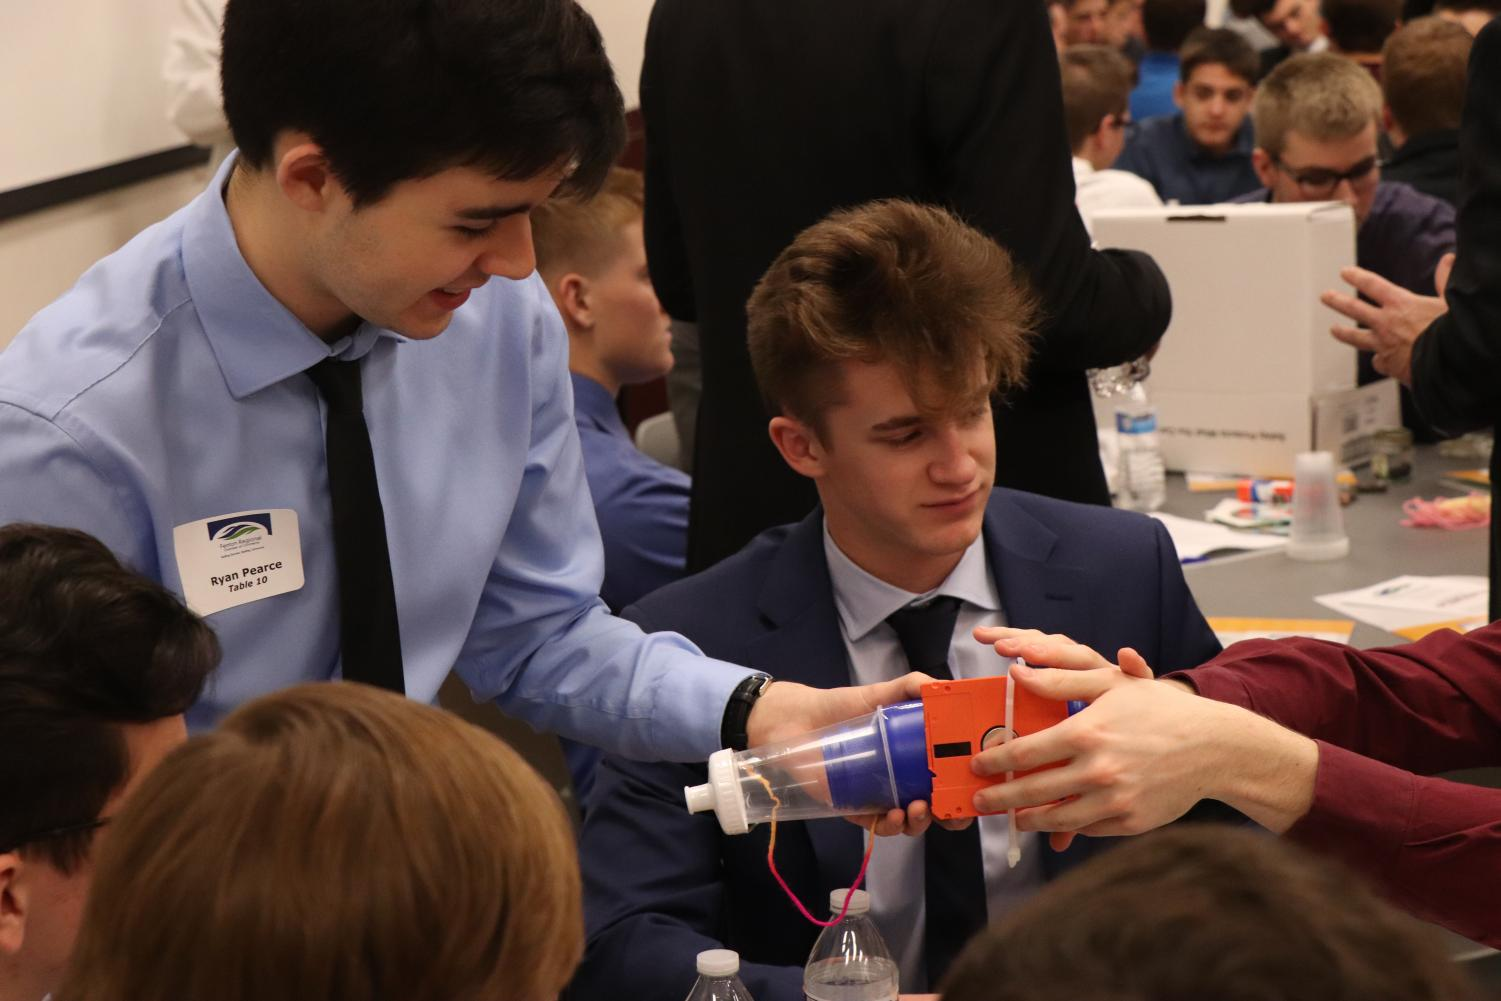 Senior Brady Young and junior Ryan Pearce work with their group. Students attended the annual Boys and Business conference on Dec. 4.